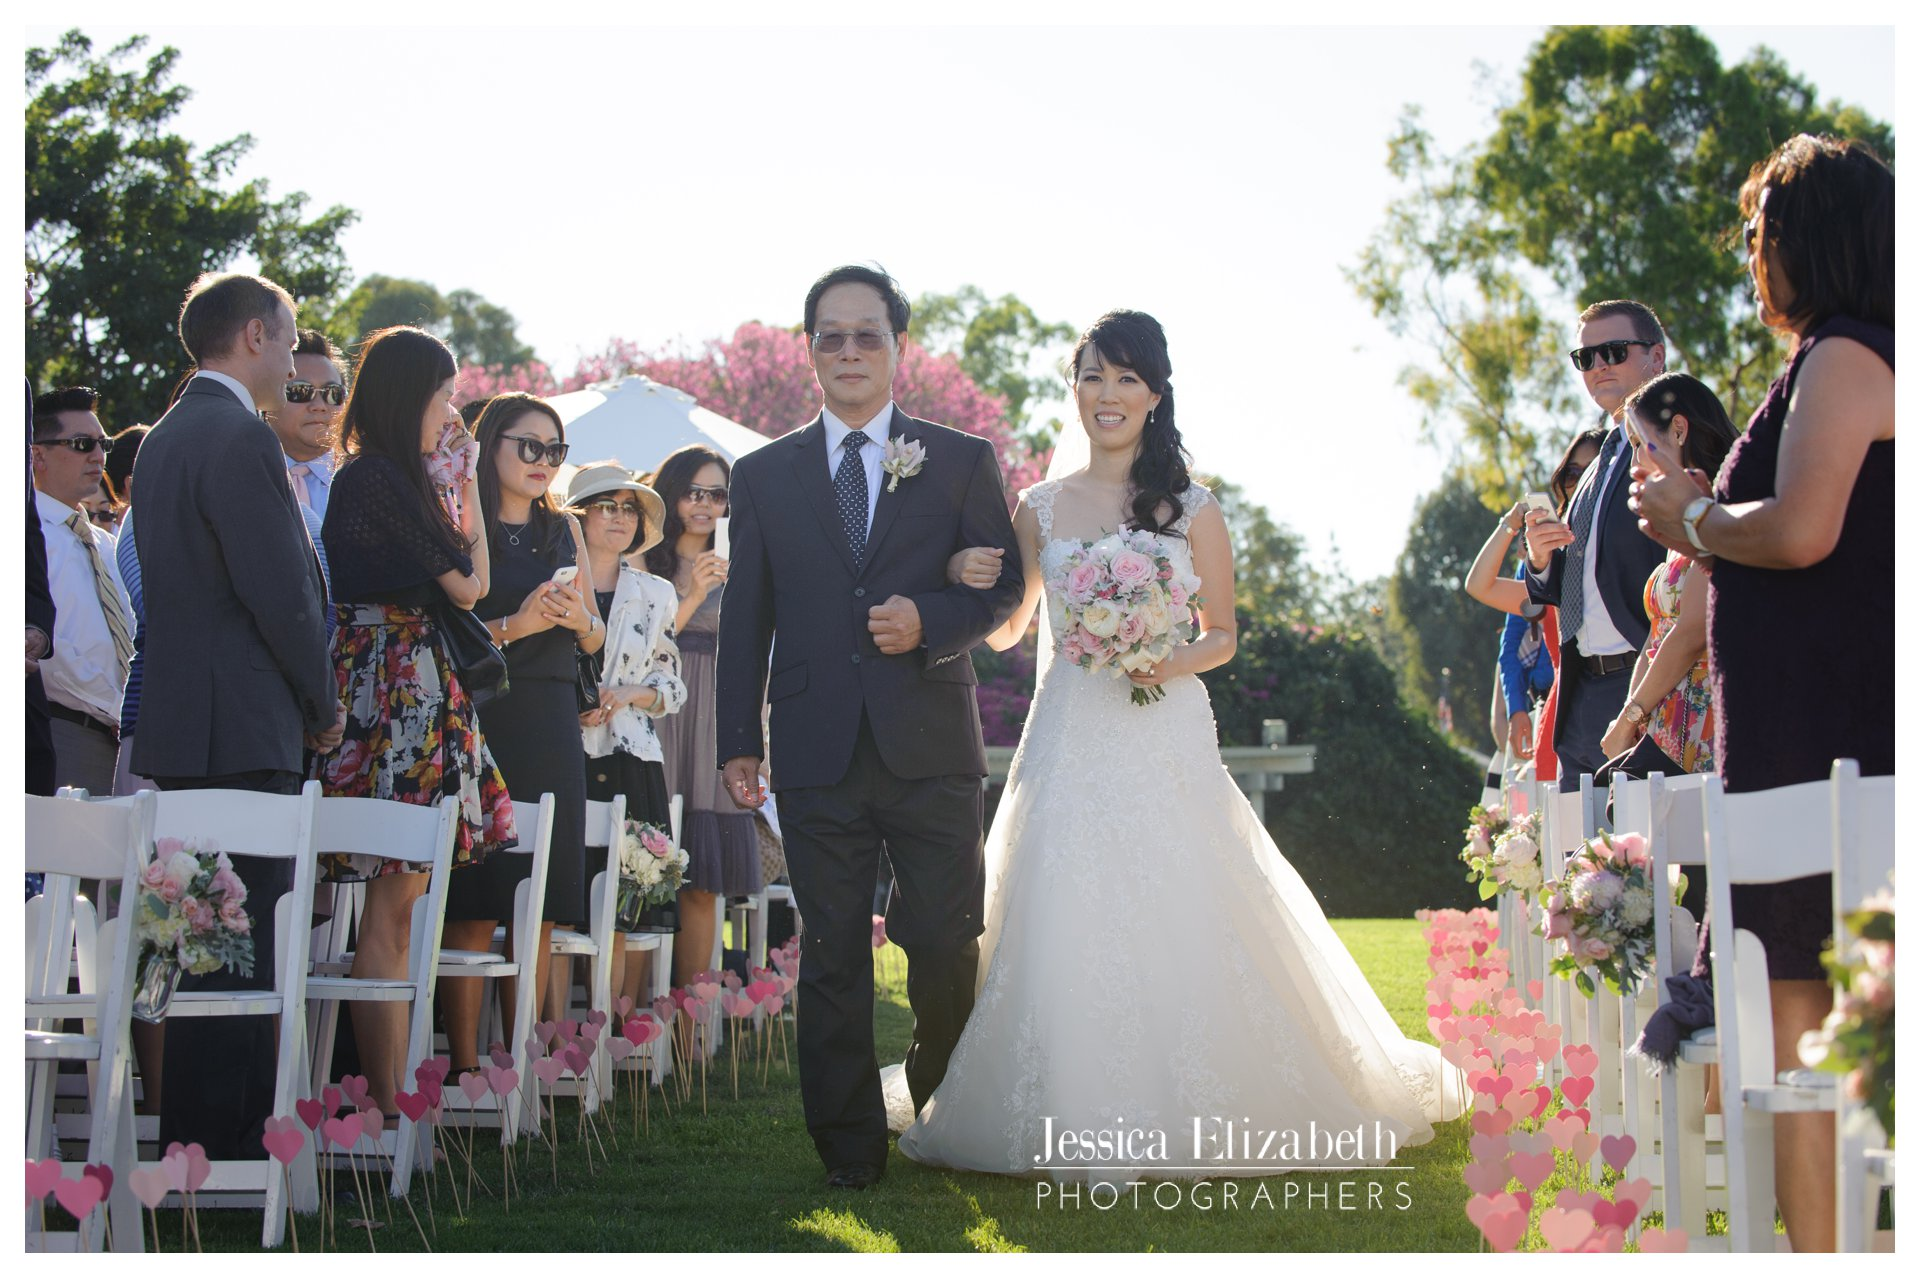 17-South Coast Botanic Garden Palos Verdes Wedding Photography by Jessica Elizabeth